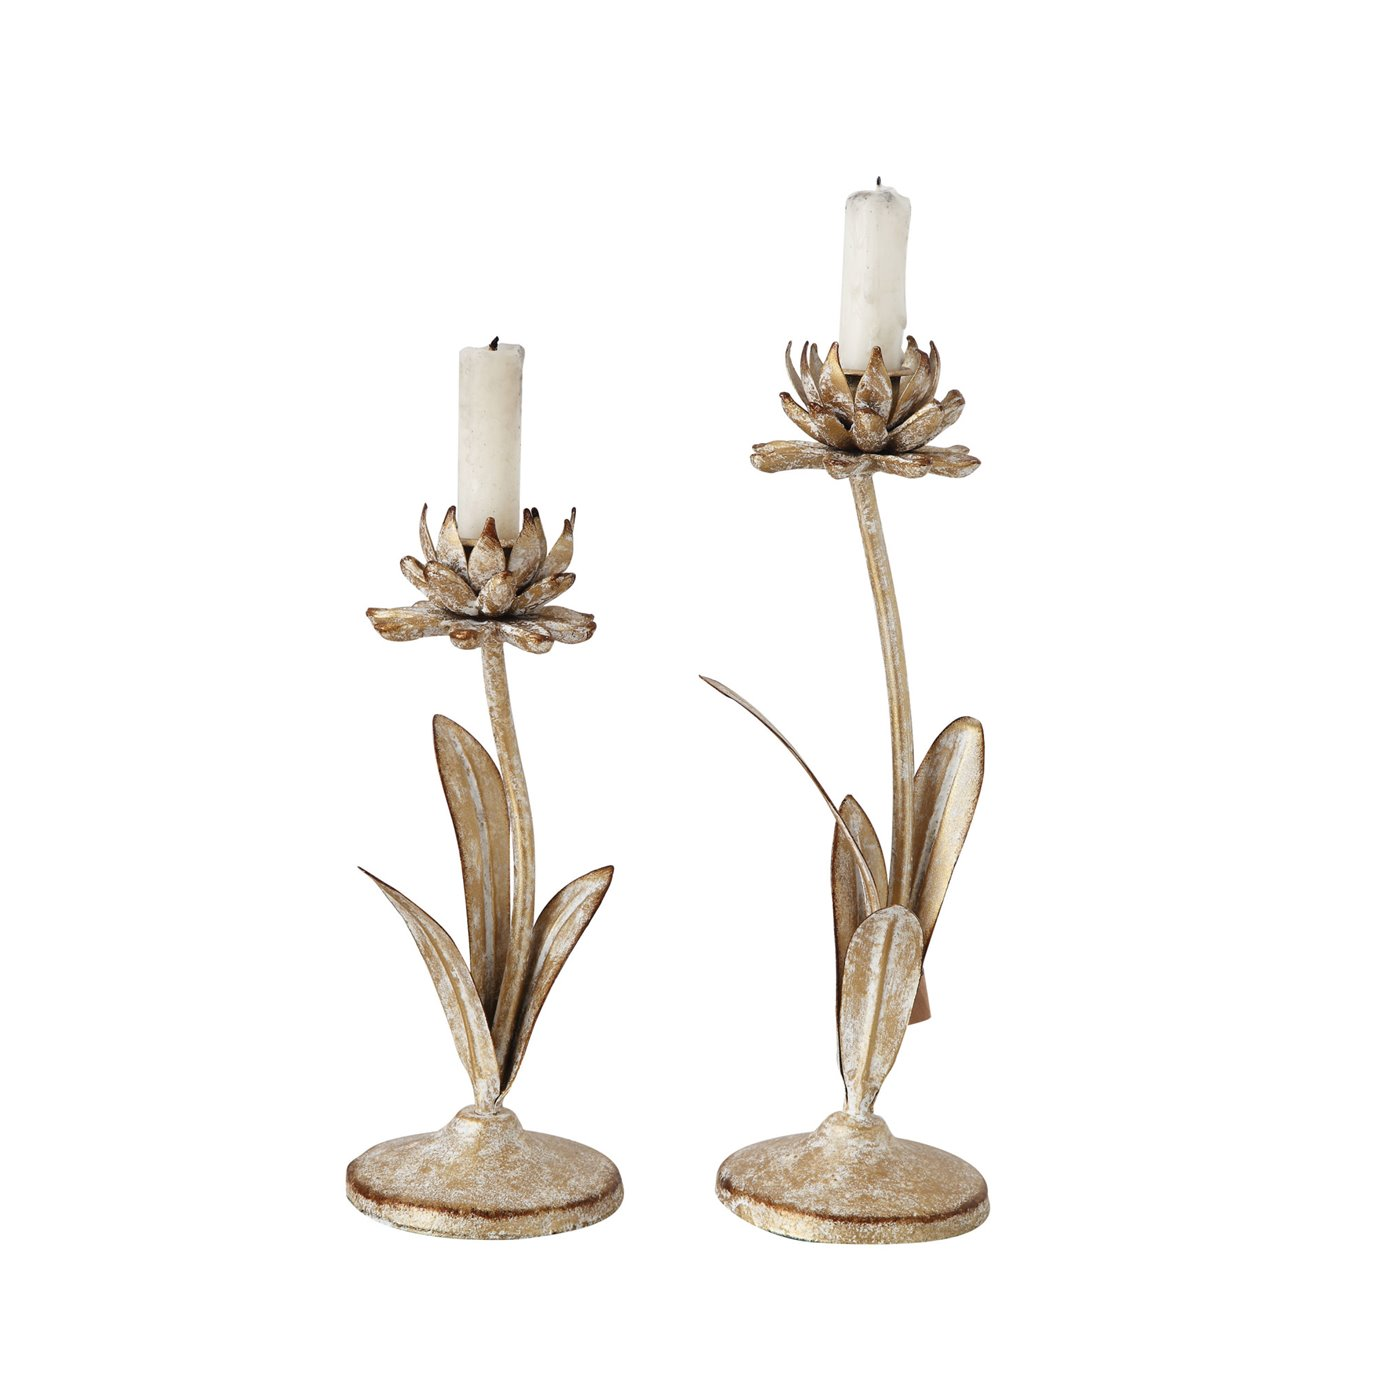 Cut Metal Flower Shaped Taper Candleholder in Distressed Gold Finish (Set of 2 Sizes)